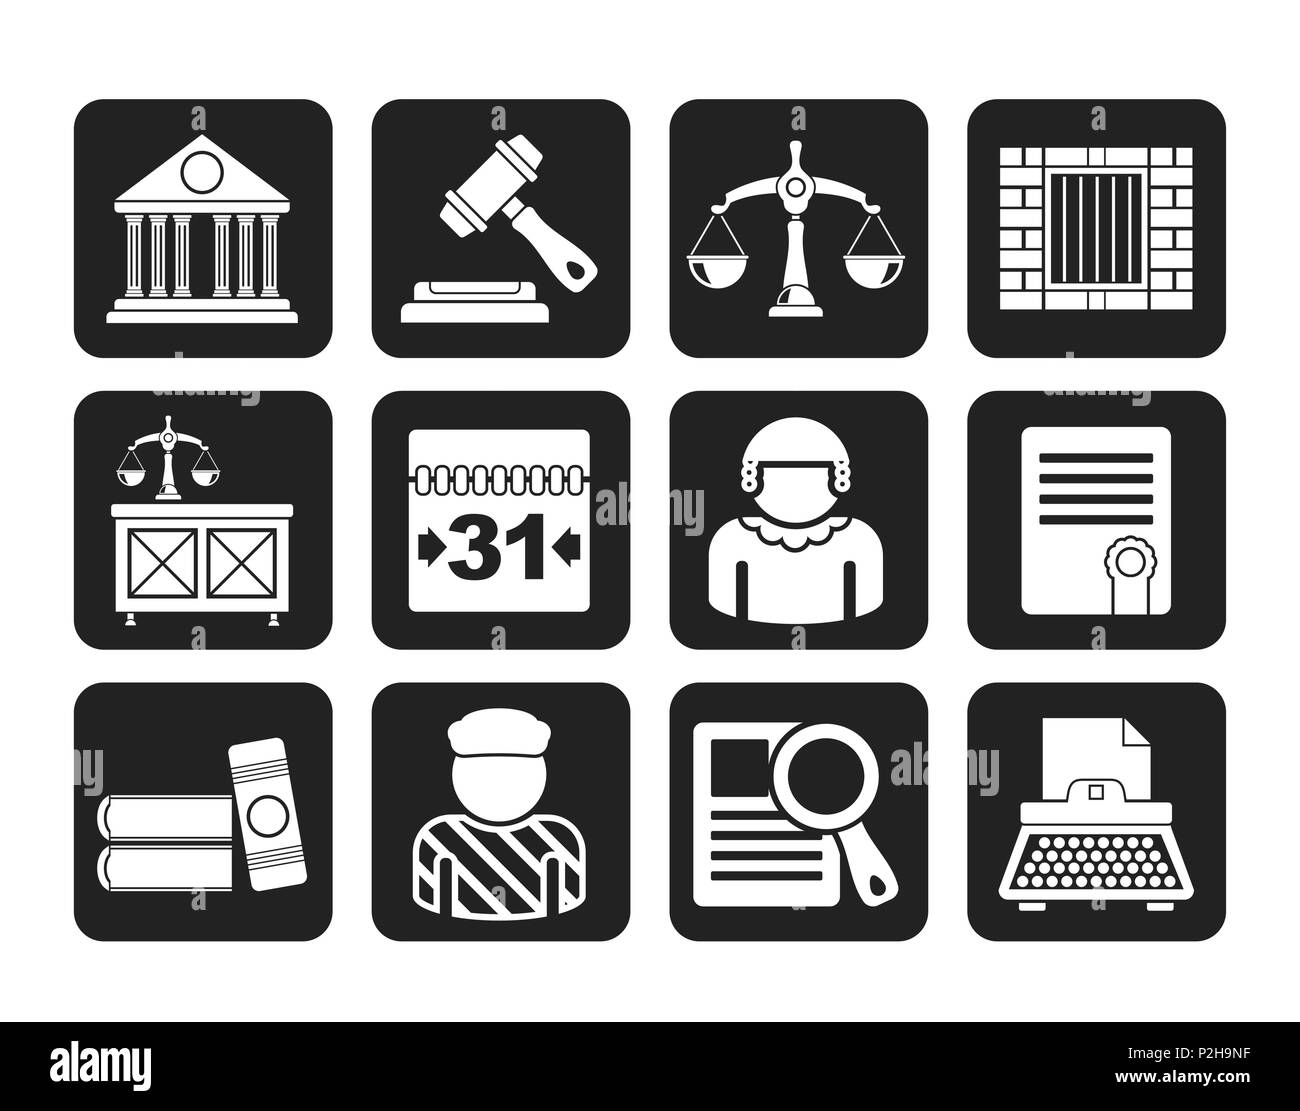 Silhouette Justice and Judicial System icons - vector icon set - Stock Image